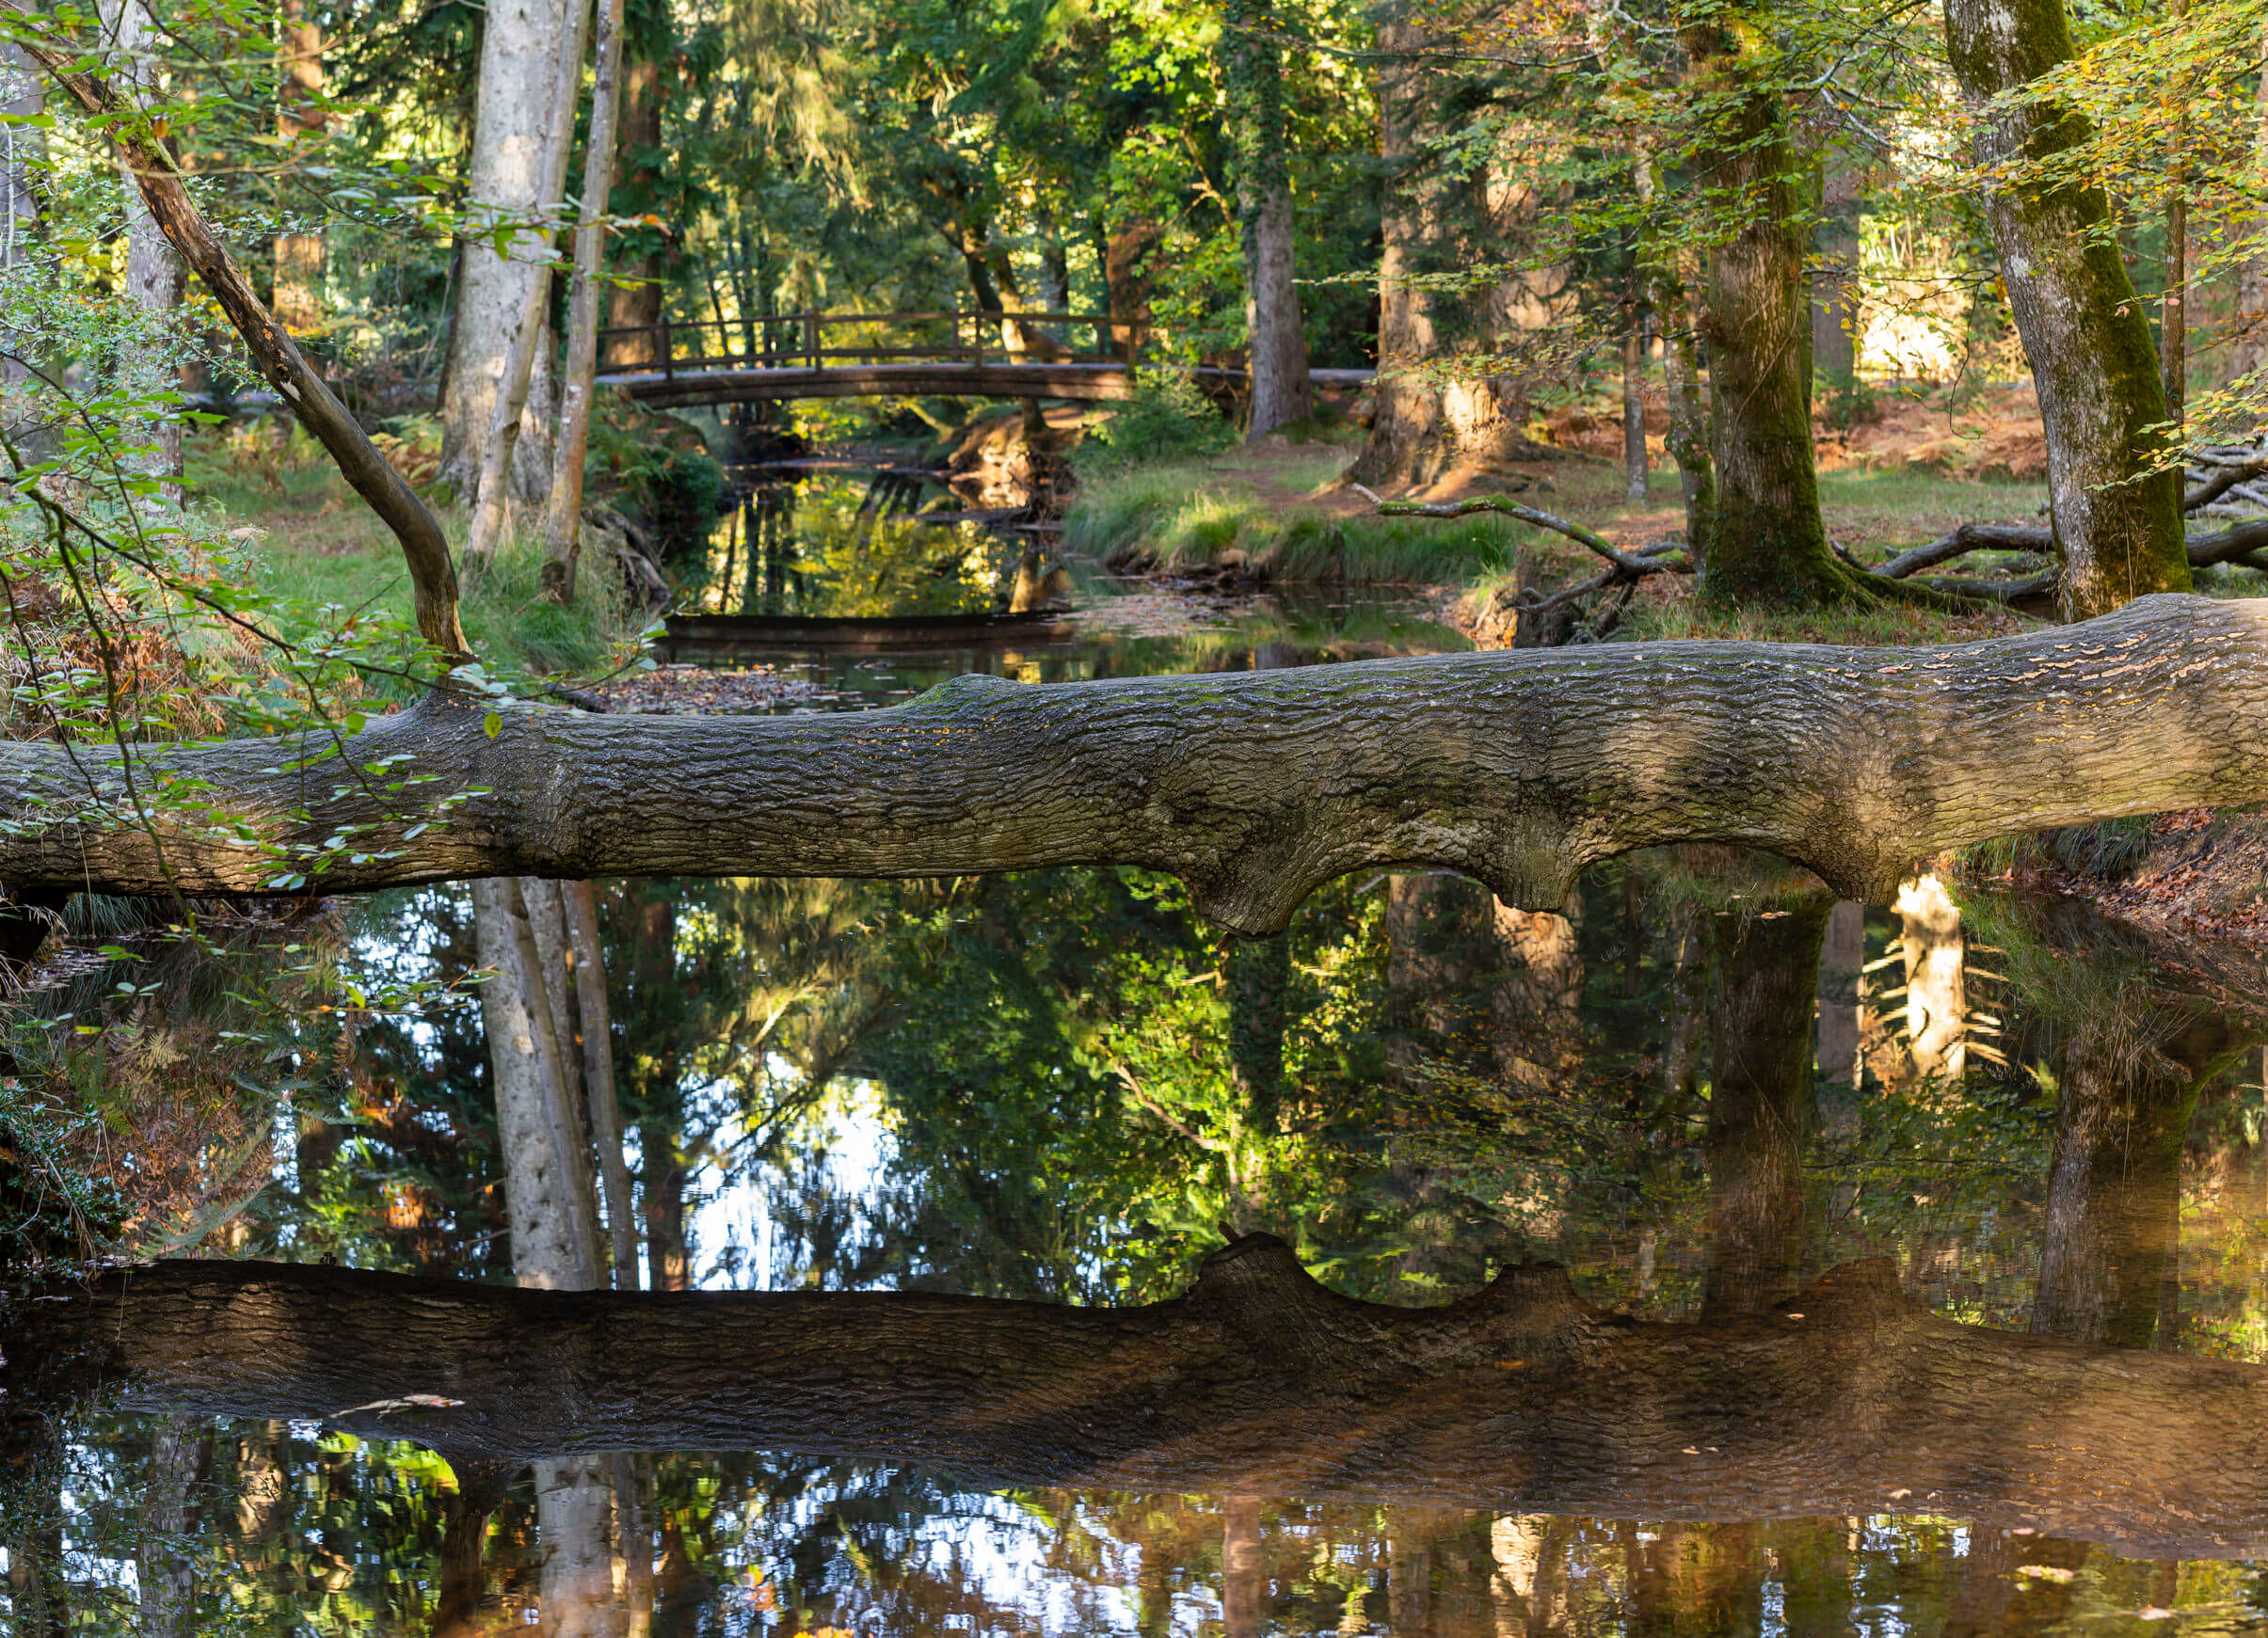 Autum trees, creek and bridge in National Park New Forest, England.